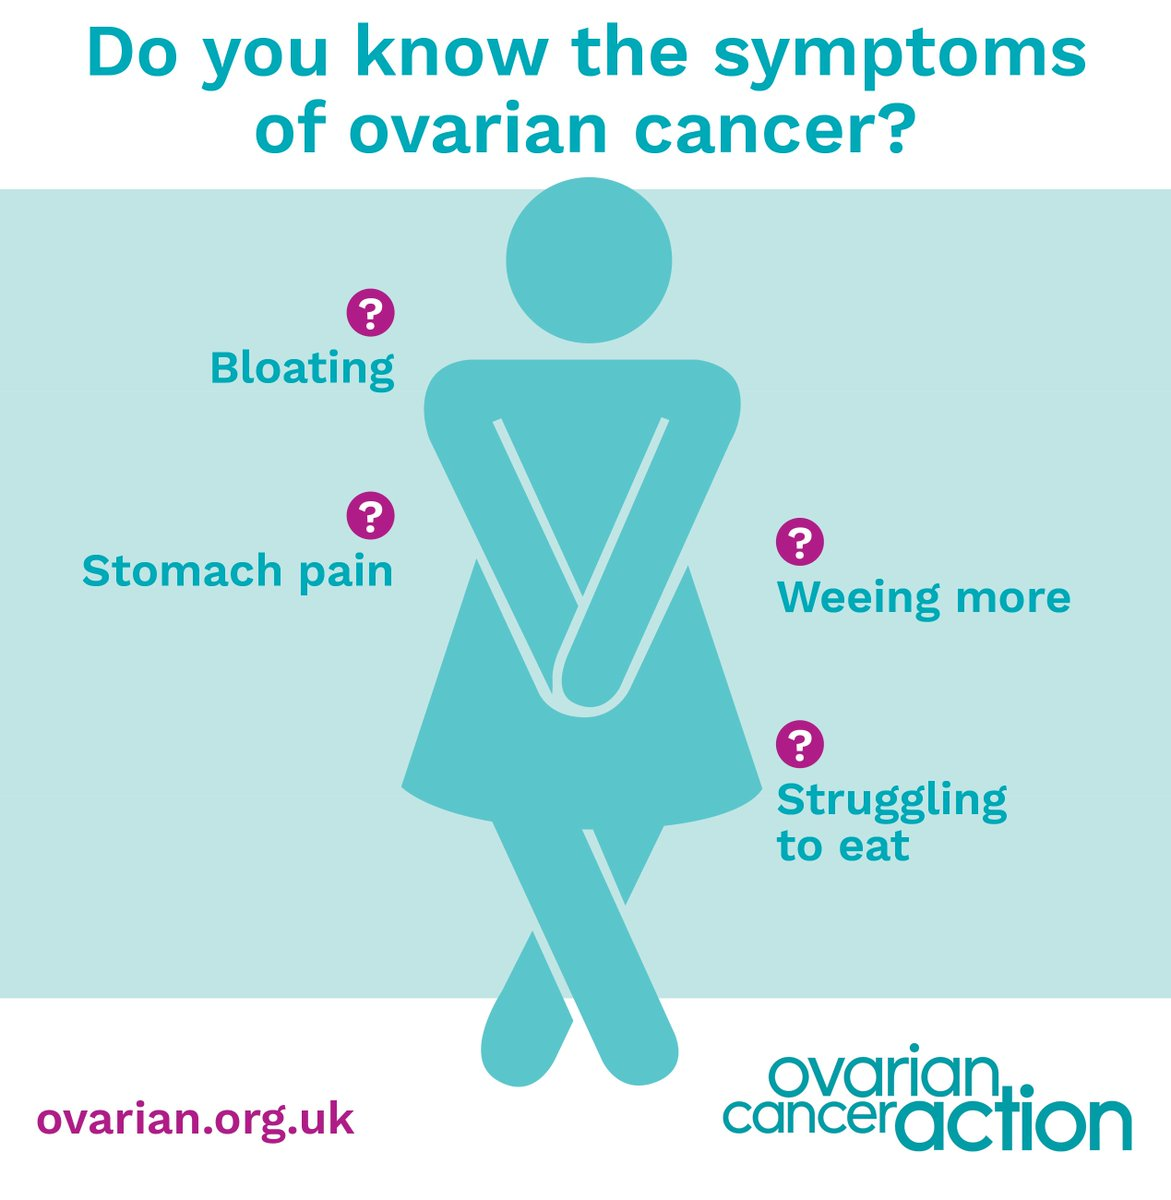 Ovarian Cancer Action On Twitter Bloating Feeling Full And Stomach Pain Can All Be Signs Of Overdoing It At Christmas But If Your Symptoms Are Persistent Frequent Severe Or Out Of The